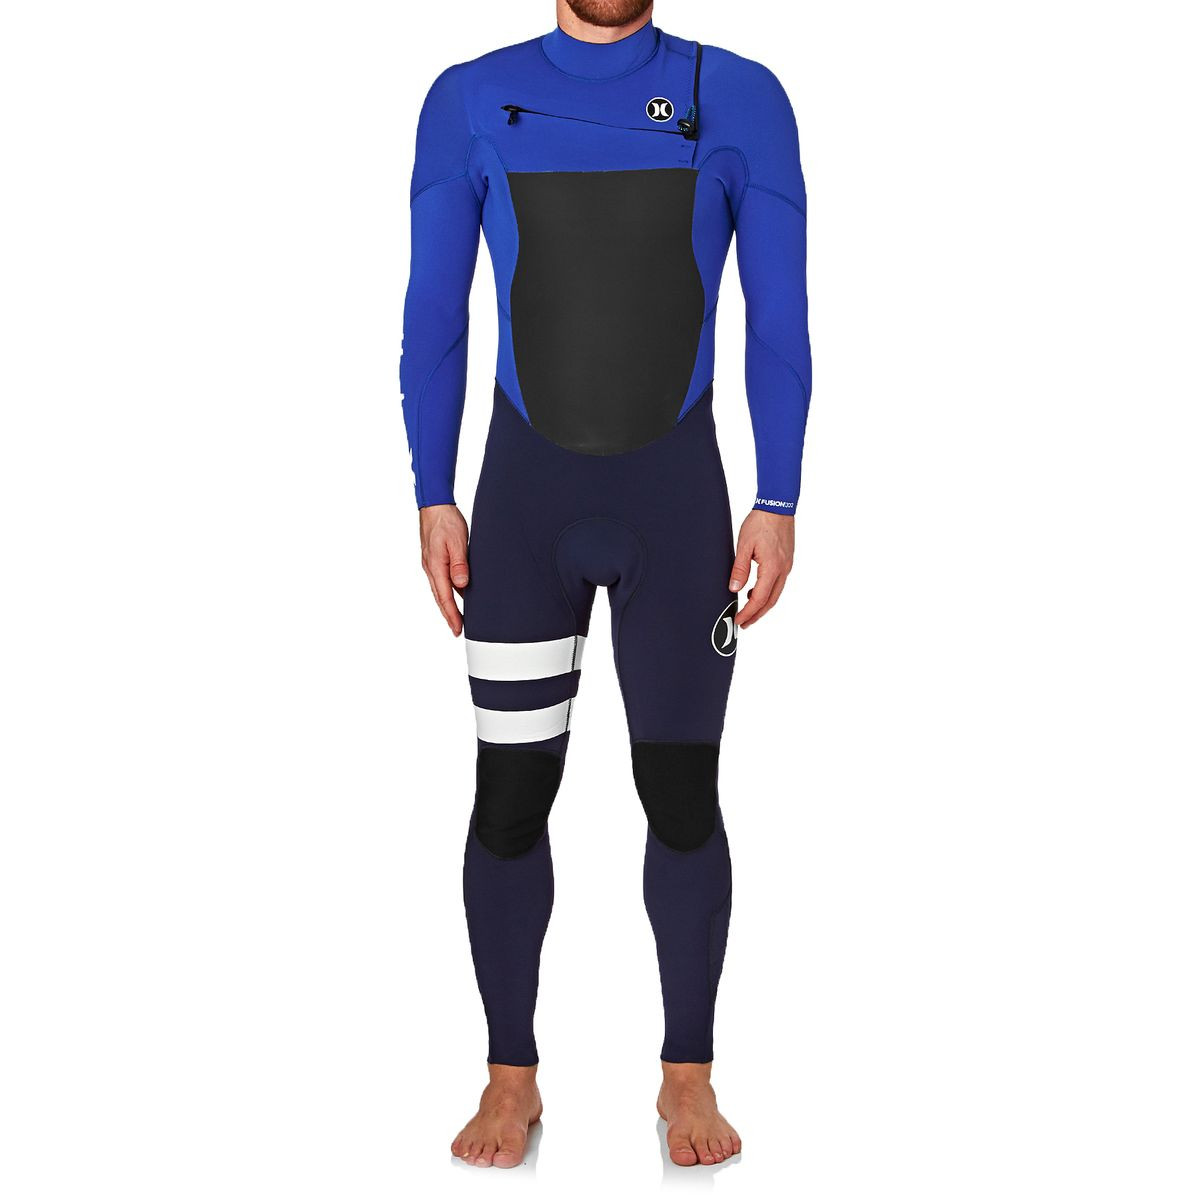 Hurley Fusion 3/2mm 2017 Chest Zip Wetsuit - Racer Blue